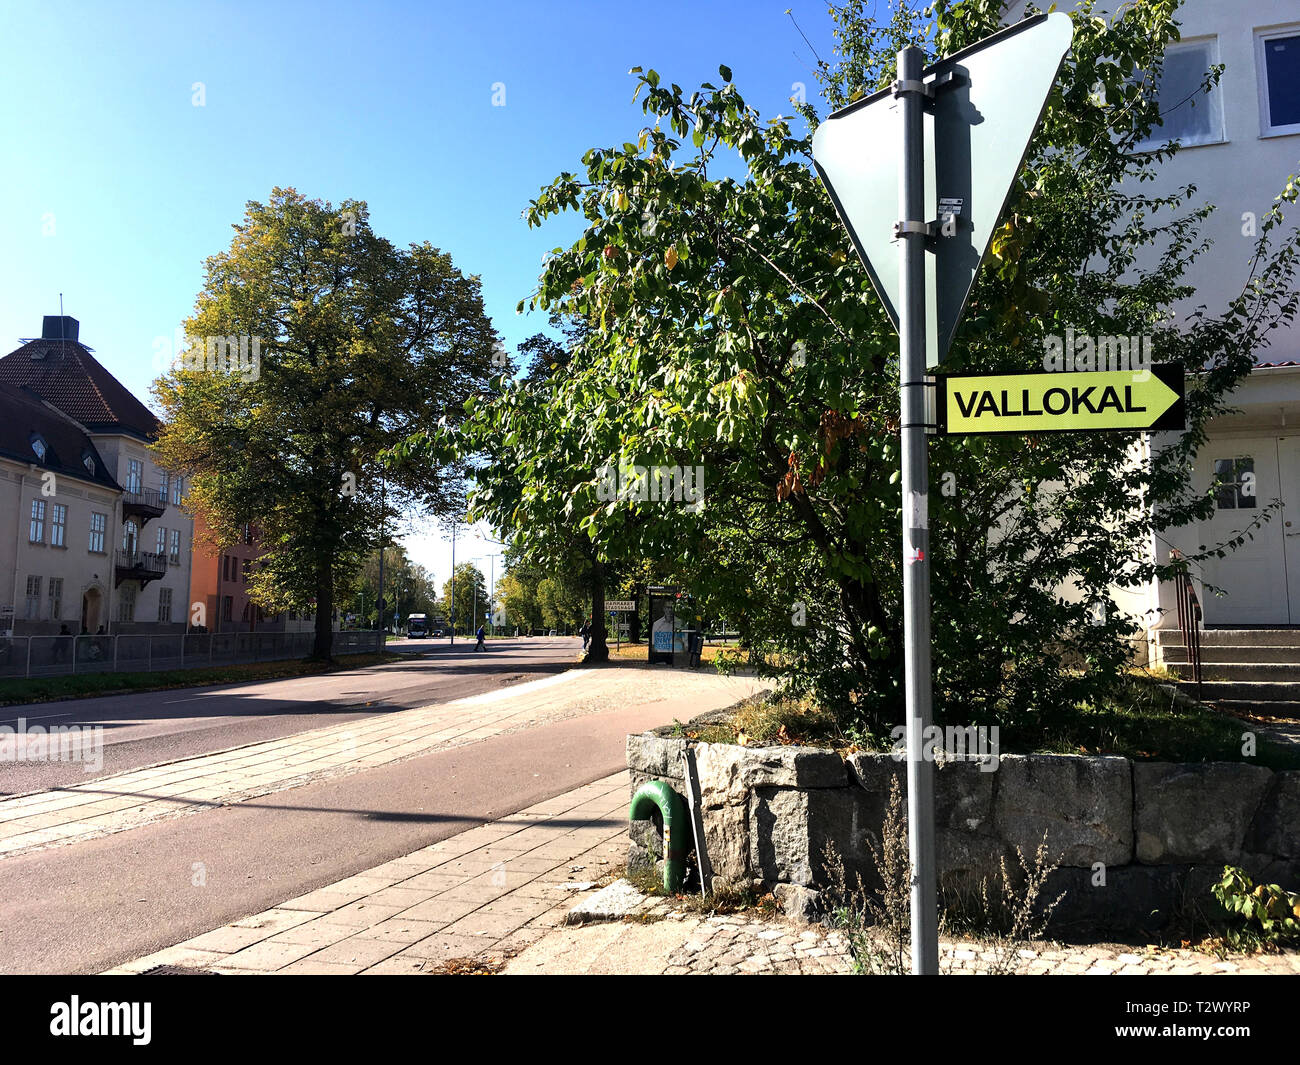 Polling station street sign in Swedish, showing the direction to a polling station in the neigborhood on election day in Sweden. - Stock Image